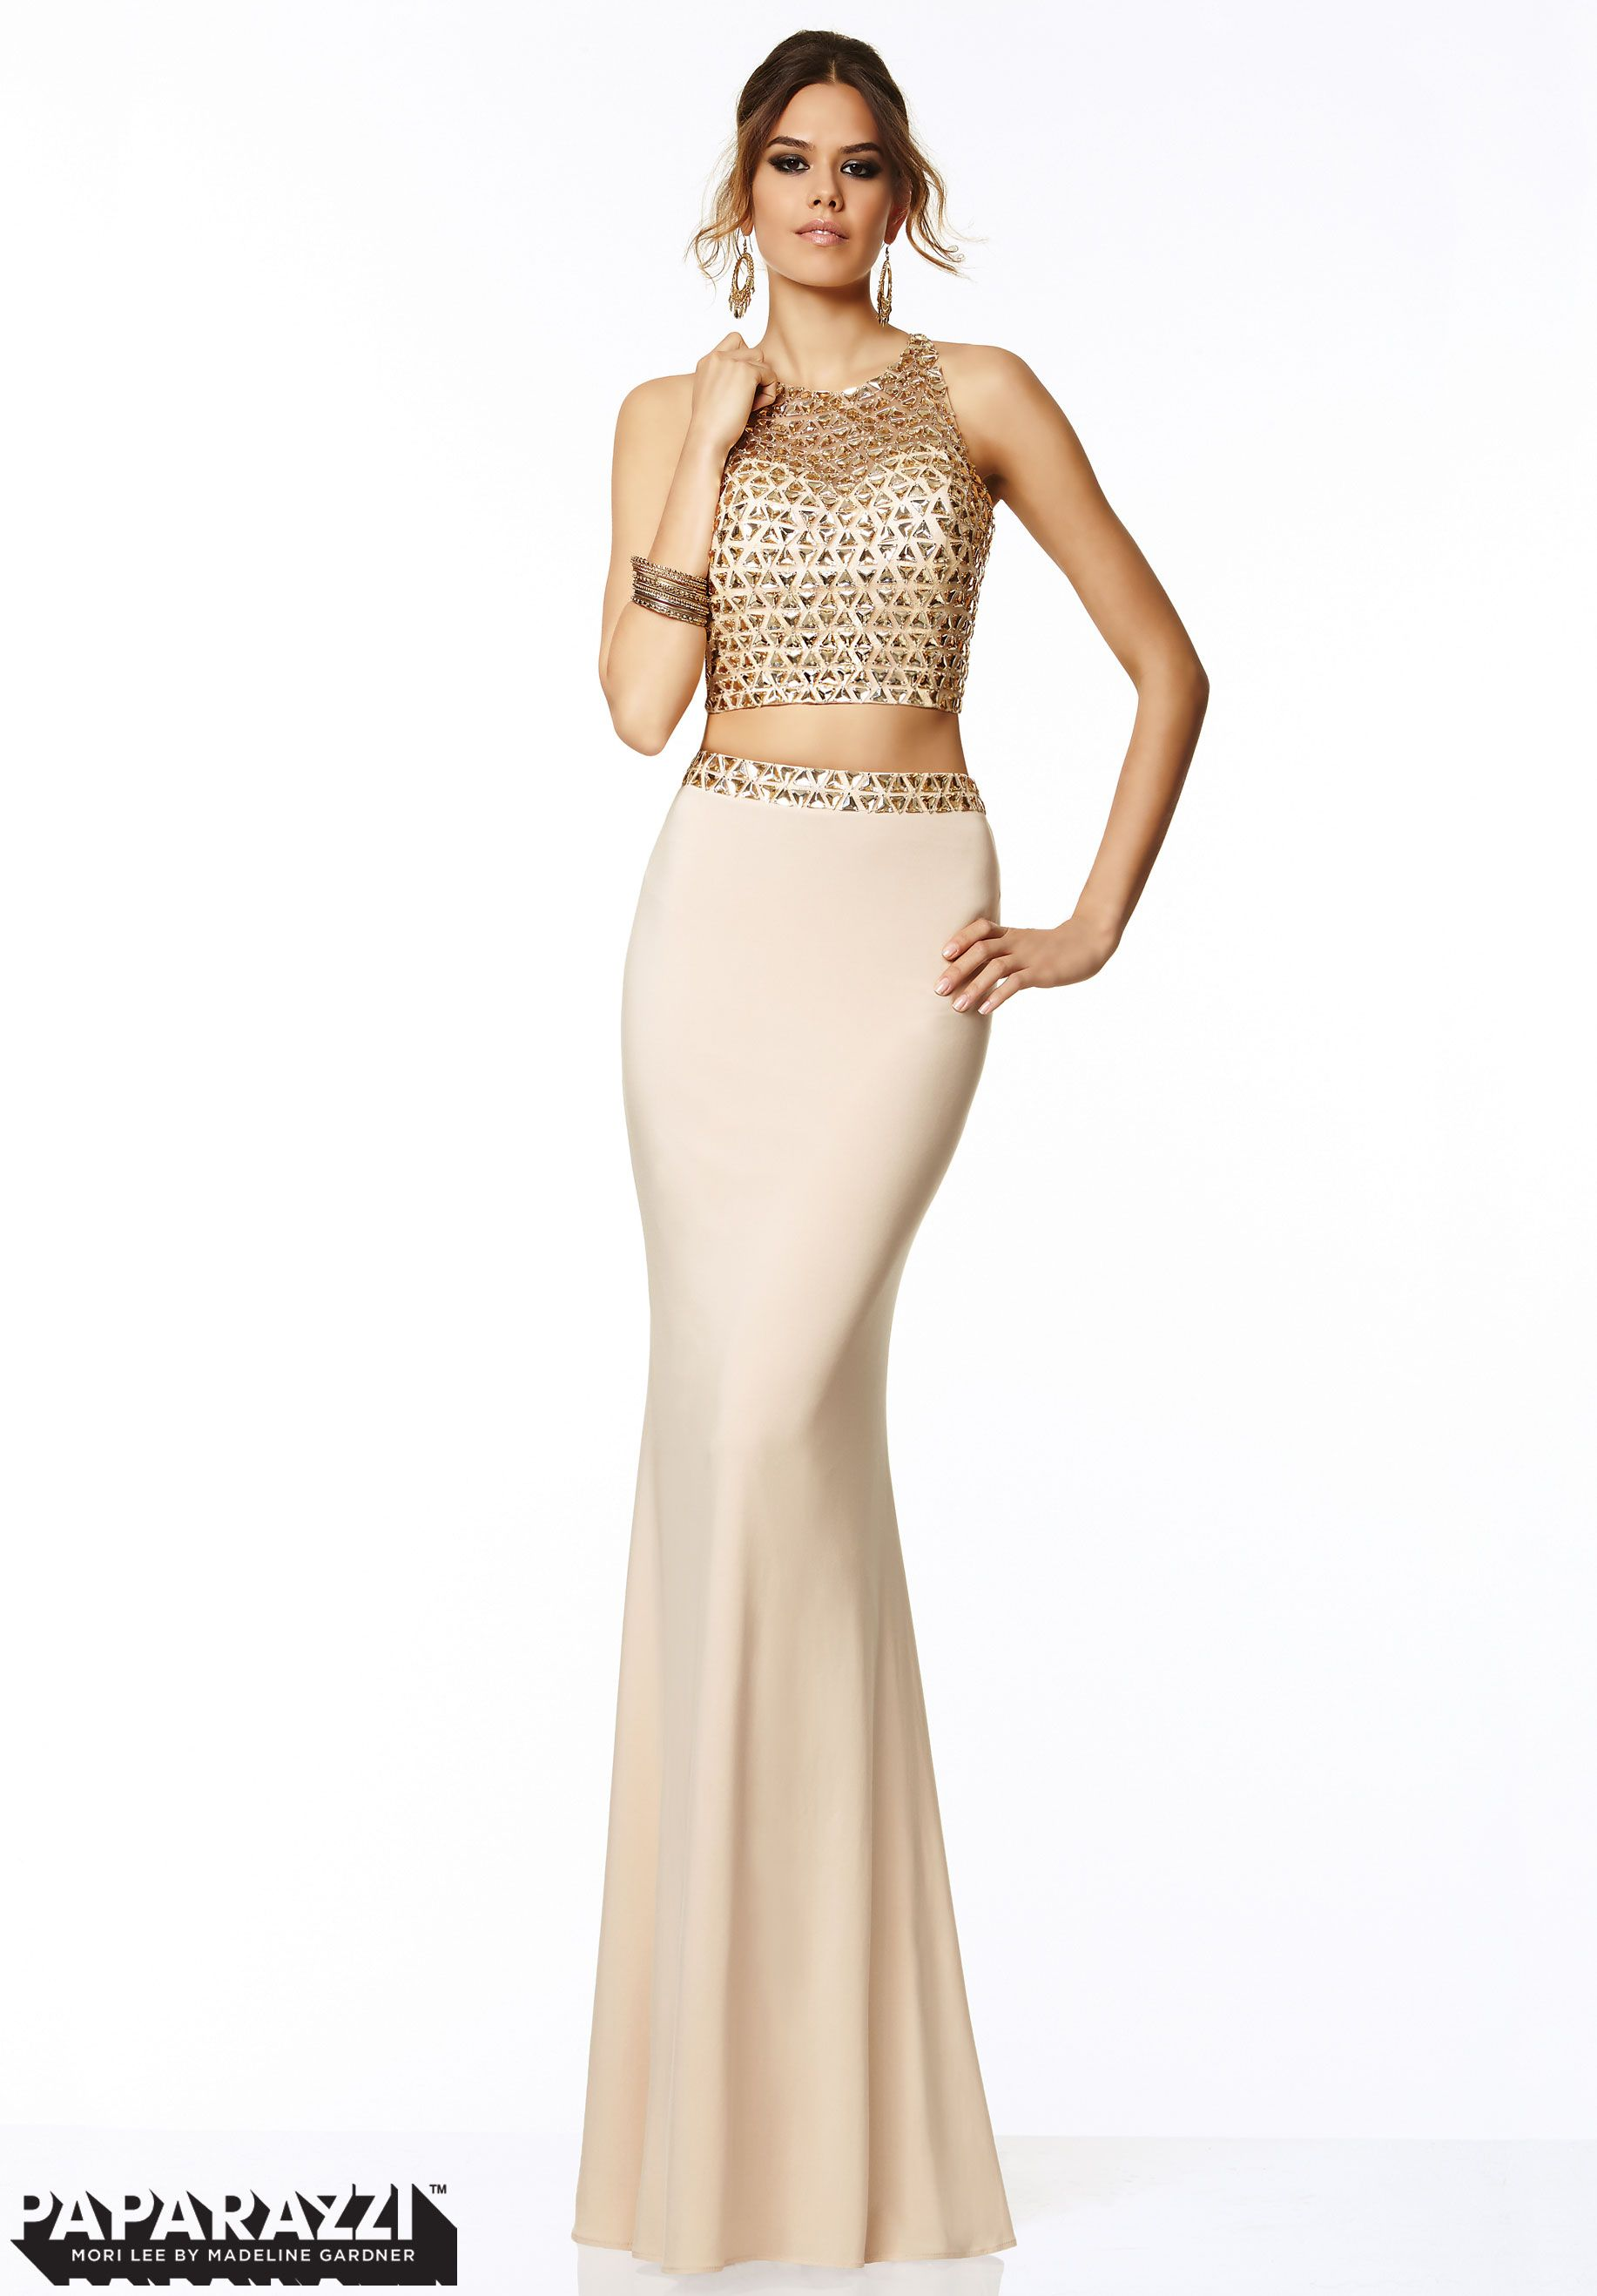 2 Piece Prom Dresses On Sale